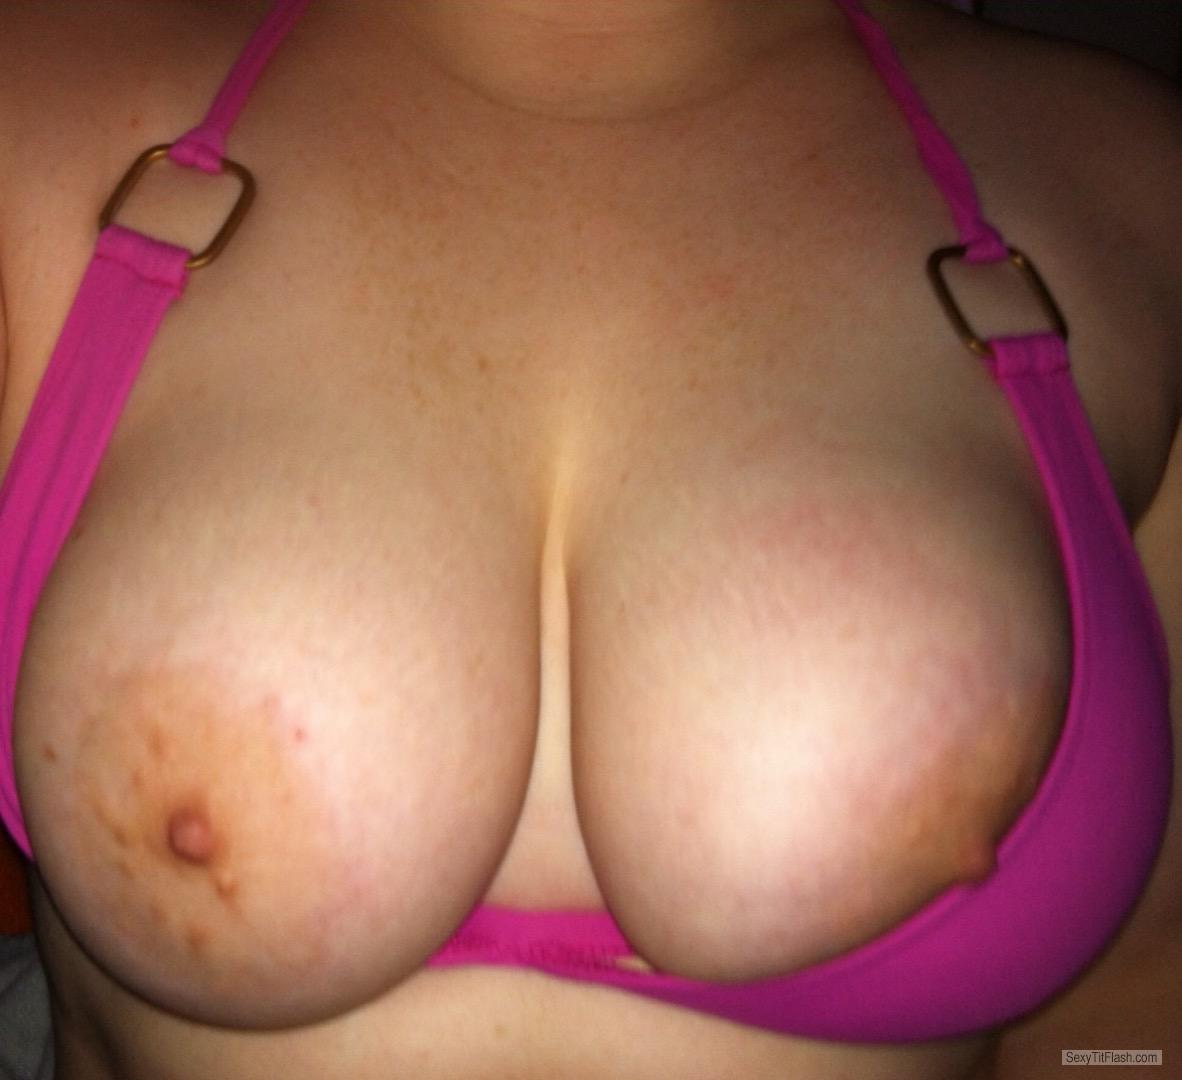 Tit Flash: Girlfriend's Big Tits - Sweet Areolas from United Kingdom